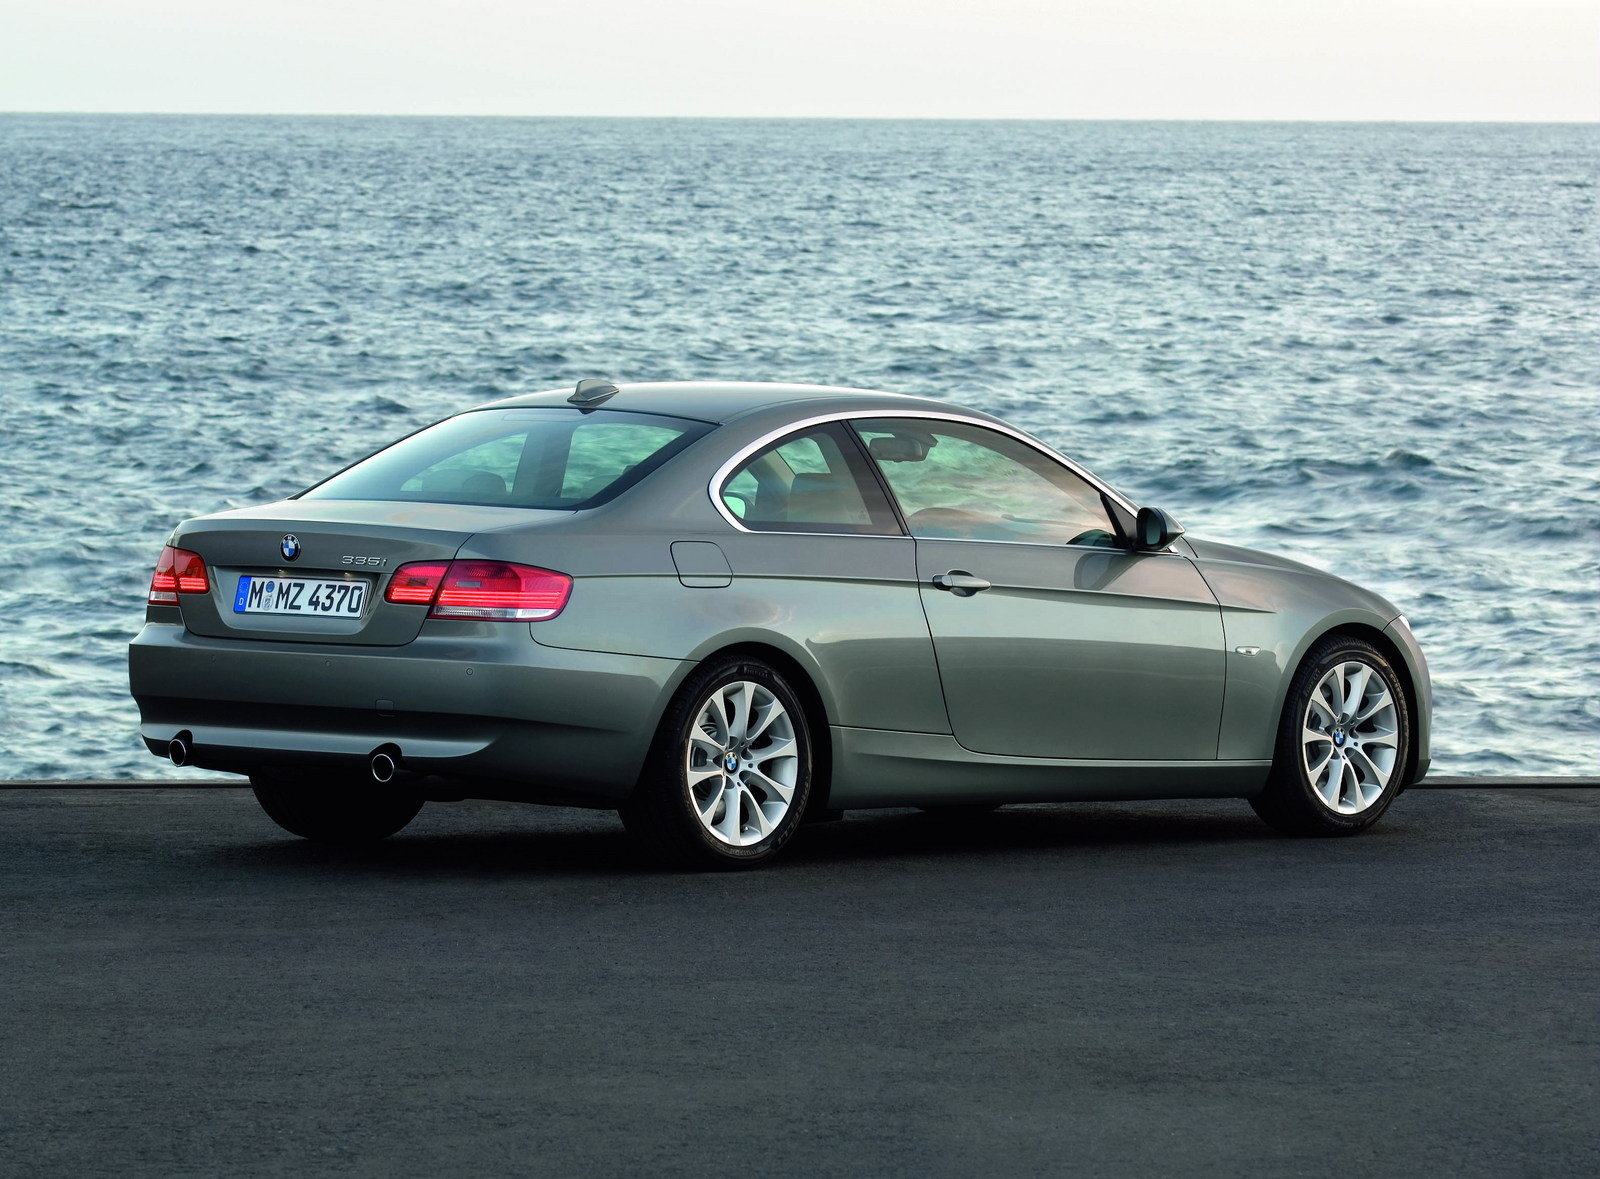 2007 bmw 3 series coupe e90 picture 54224 car review. Black Bedroom Furniture Sets. Home Design Ideas